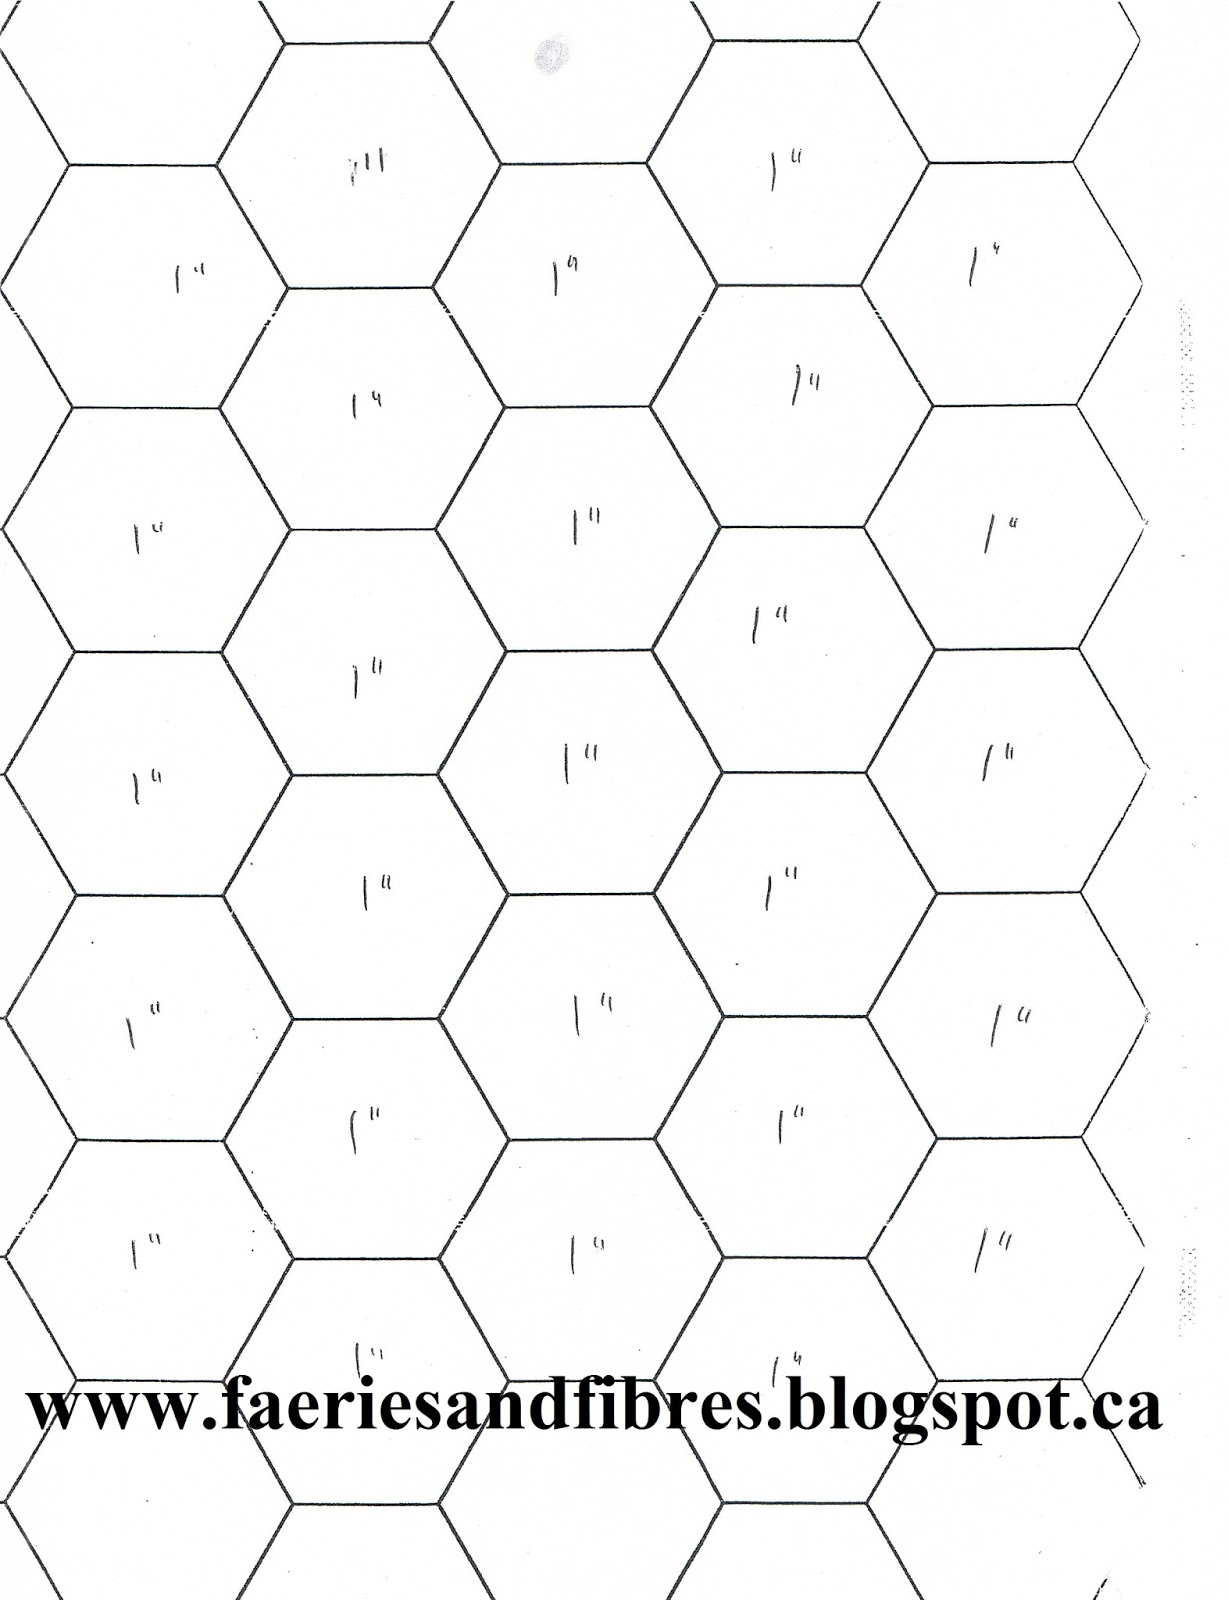 3 inch hexagon template - faeries and fibres easier than pie and easier than pie